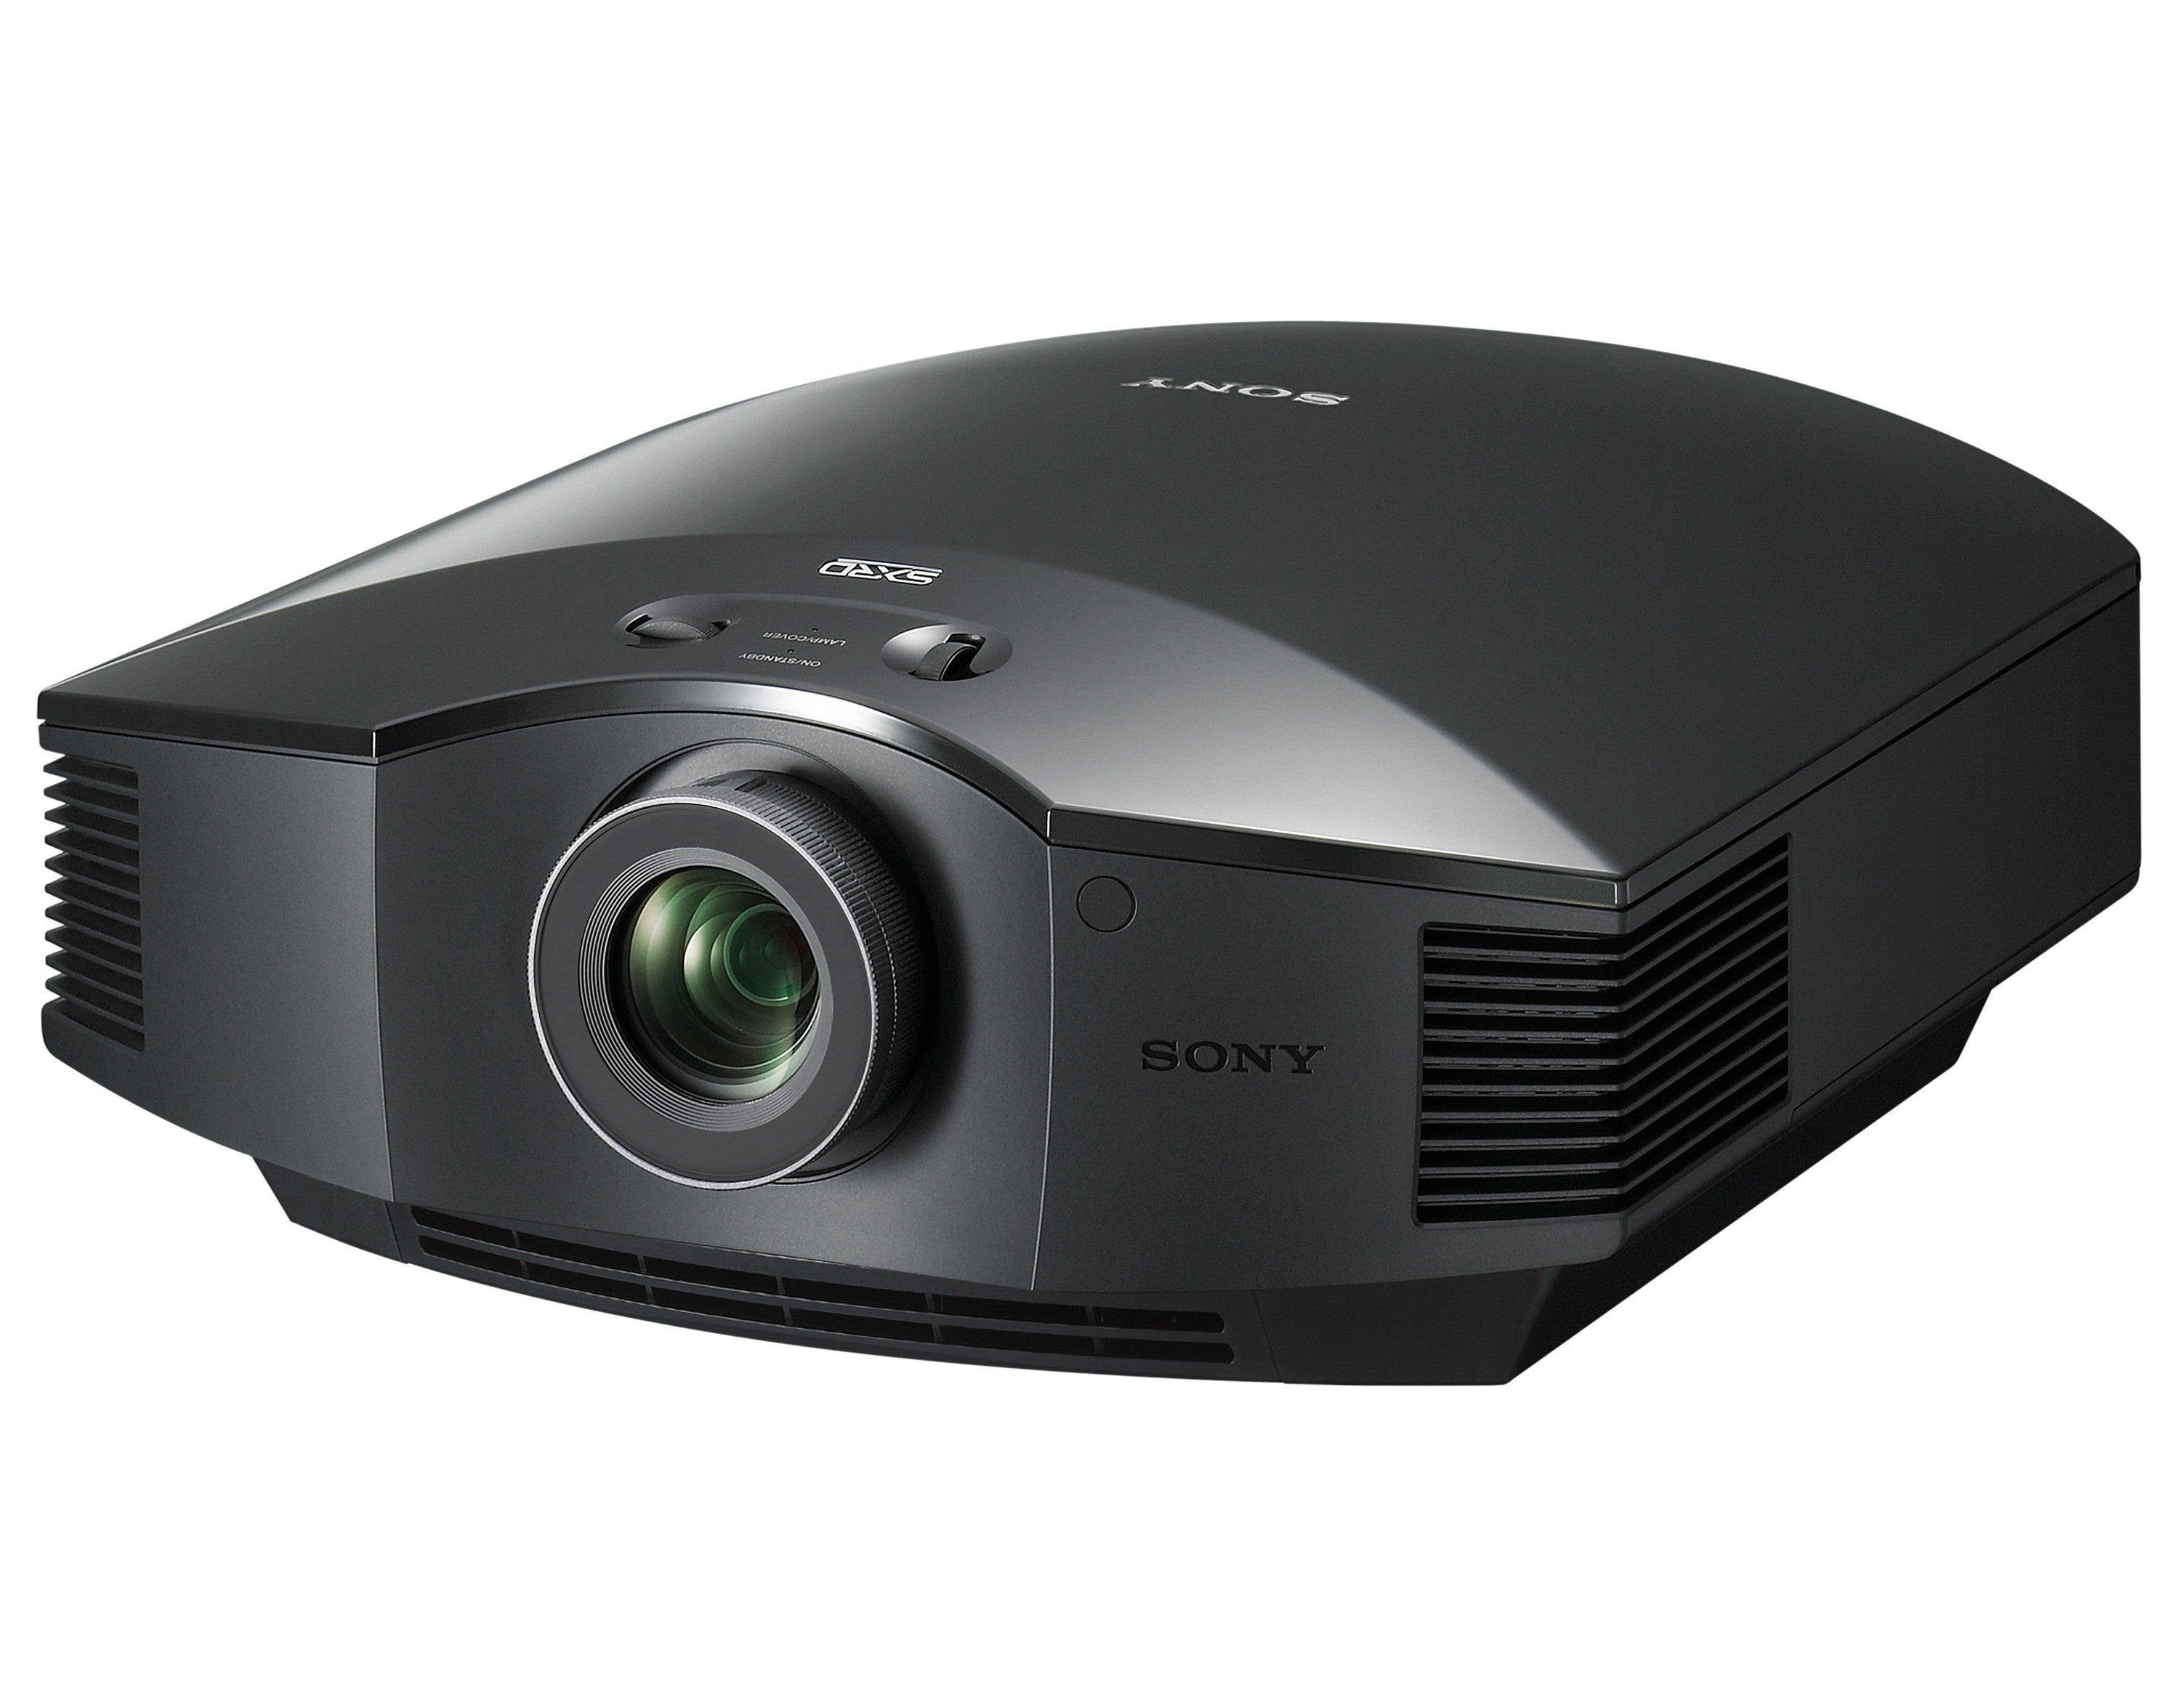 Sony VPL-HW65ES 1080p HD Home Theater ES Projector